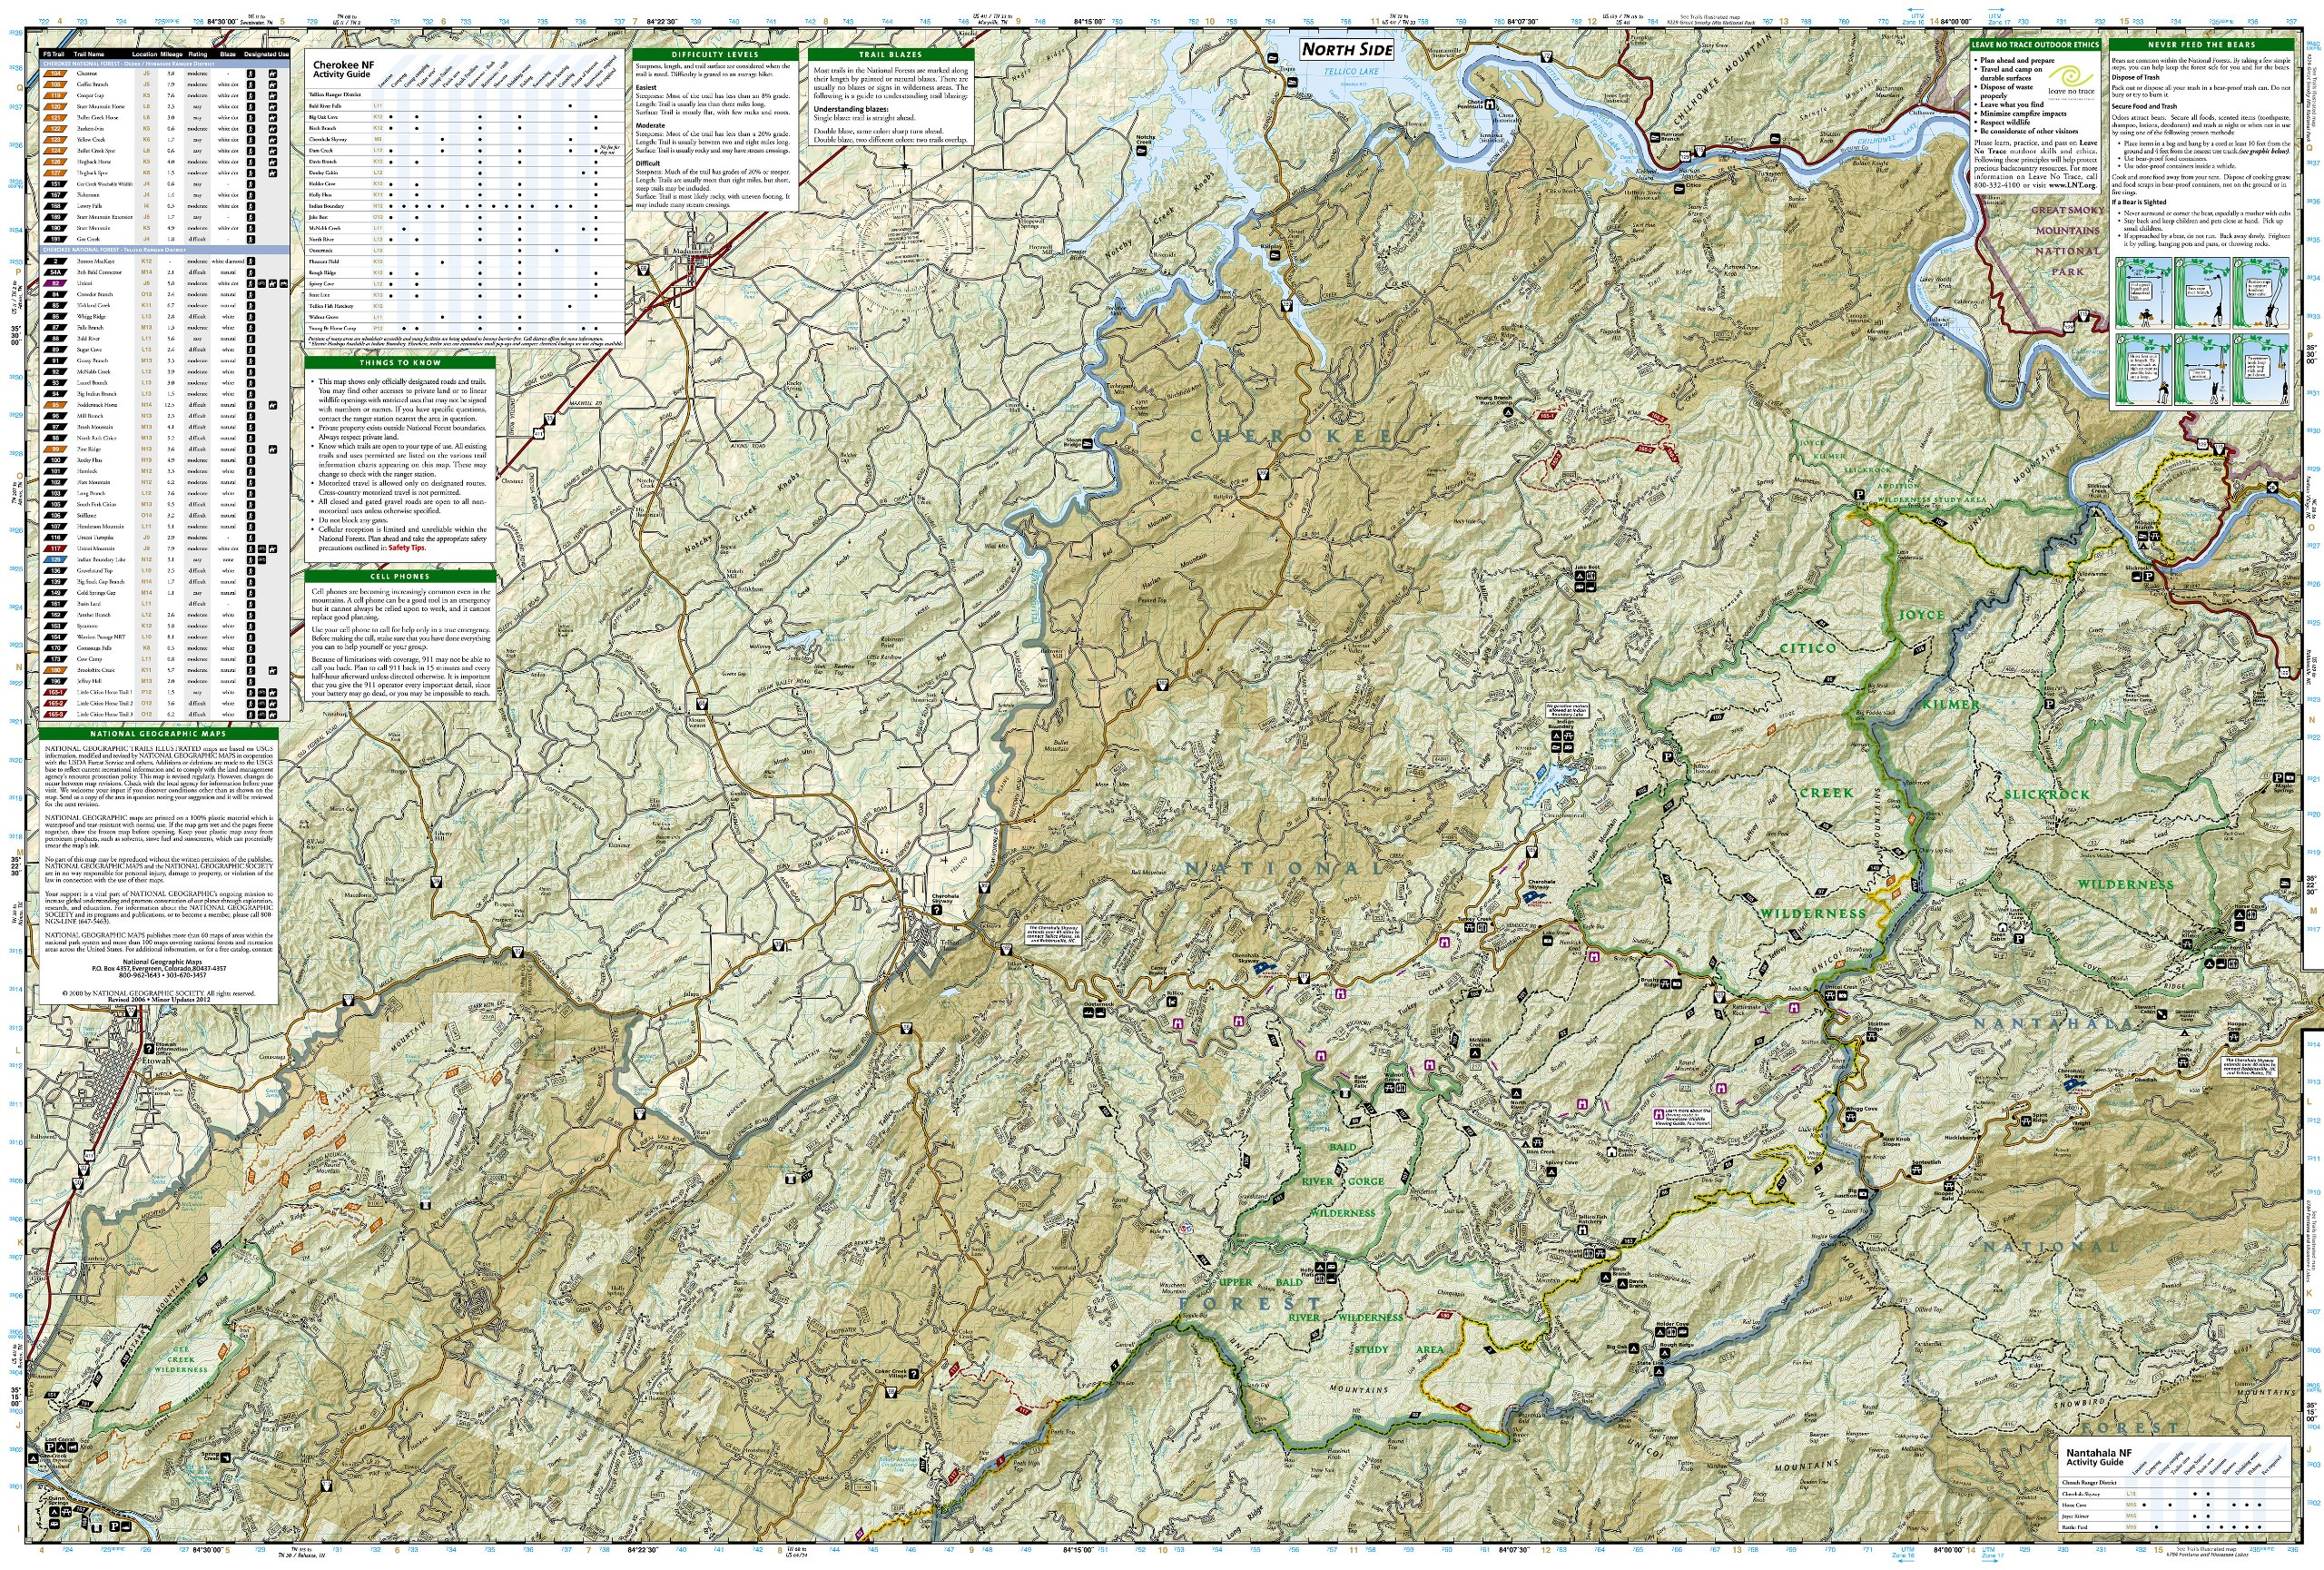 georgia state park map cities html with Chattahoochee National Forest Map on Arizona National Parks Map moreover Honolulu City Map likewise Clarkston in addition Atlanta Neighborhood Map together with Amazing Lookout Mountain.